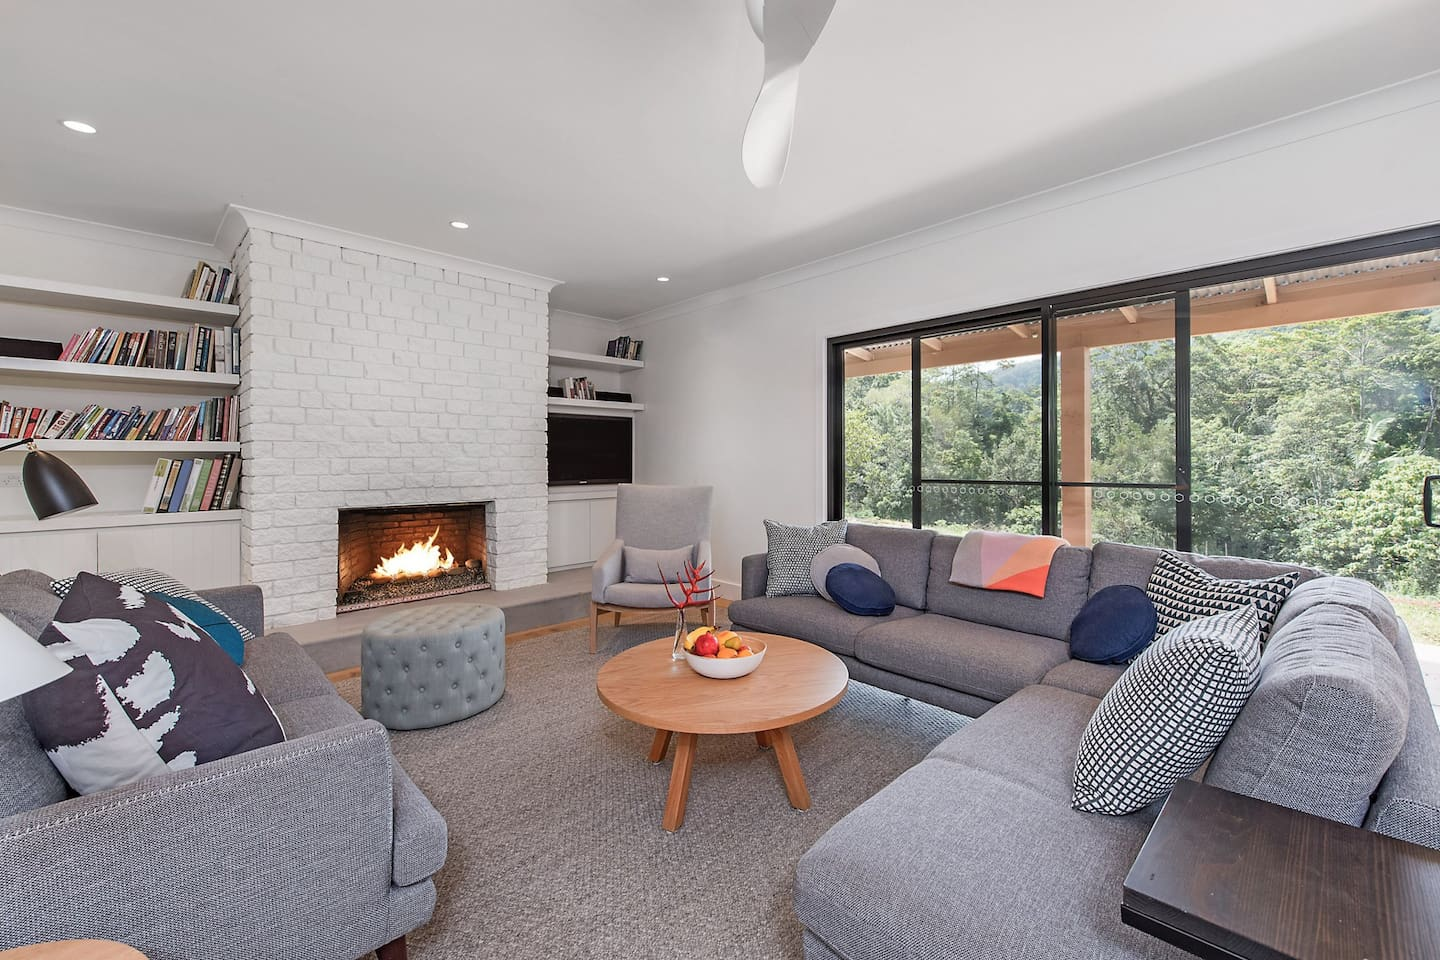 Lounge room with open fireplace and garden view